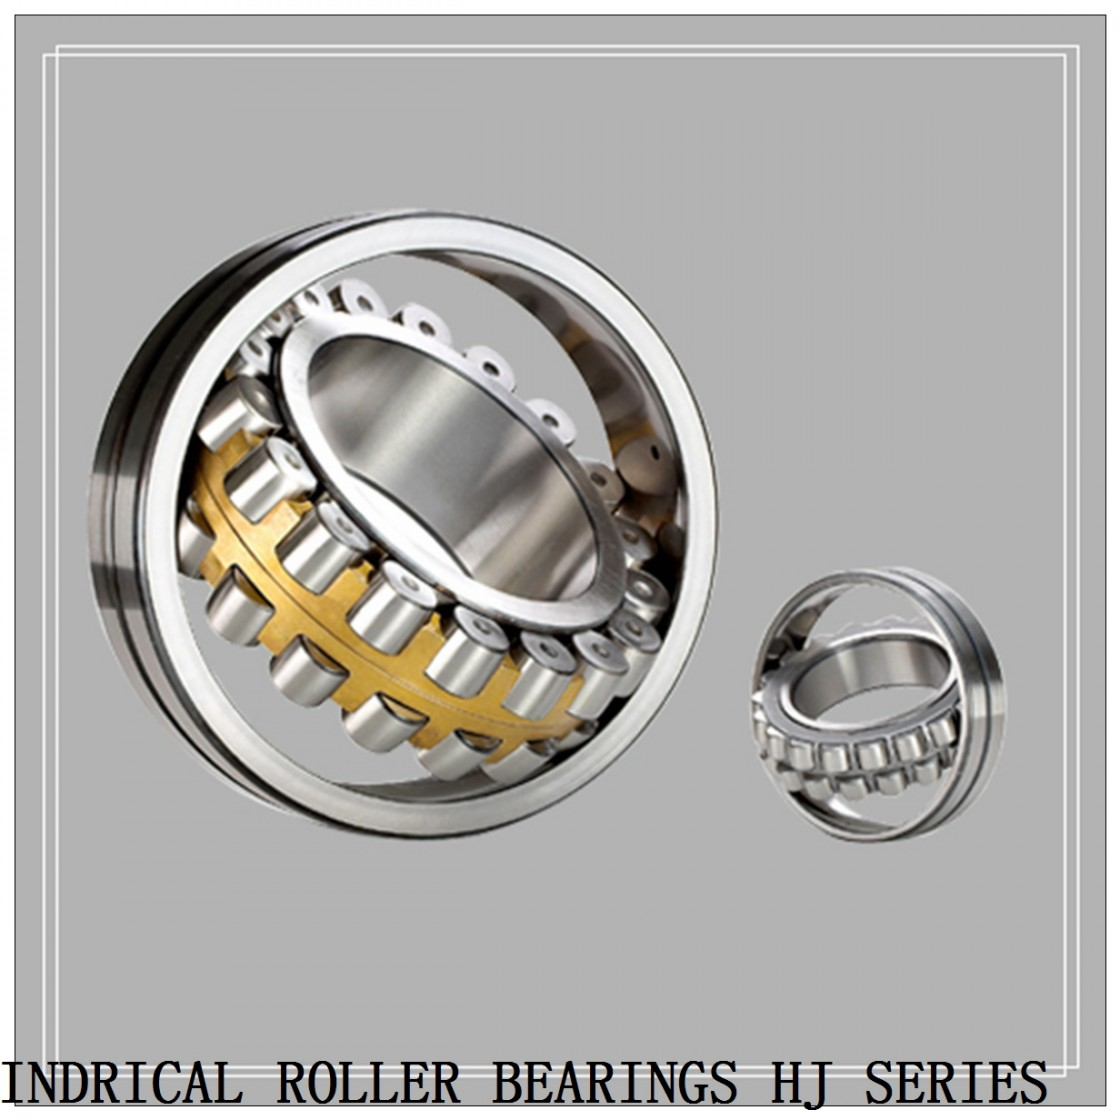 HJ-8811248 CYLINDRICAL ROLLER BEARINGS HJ SERIES